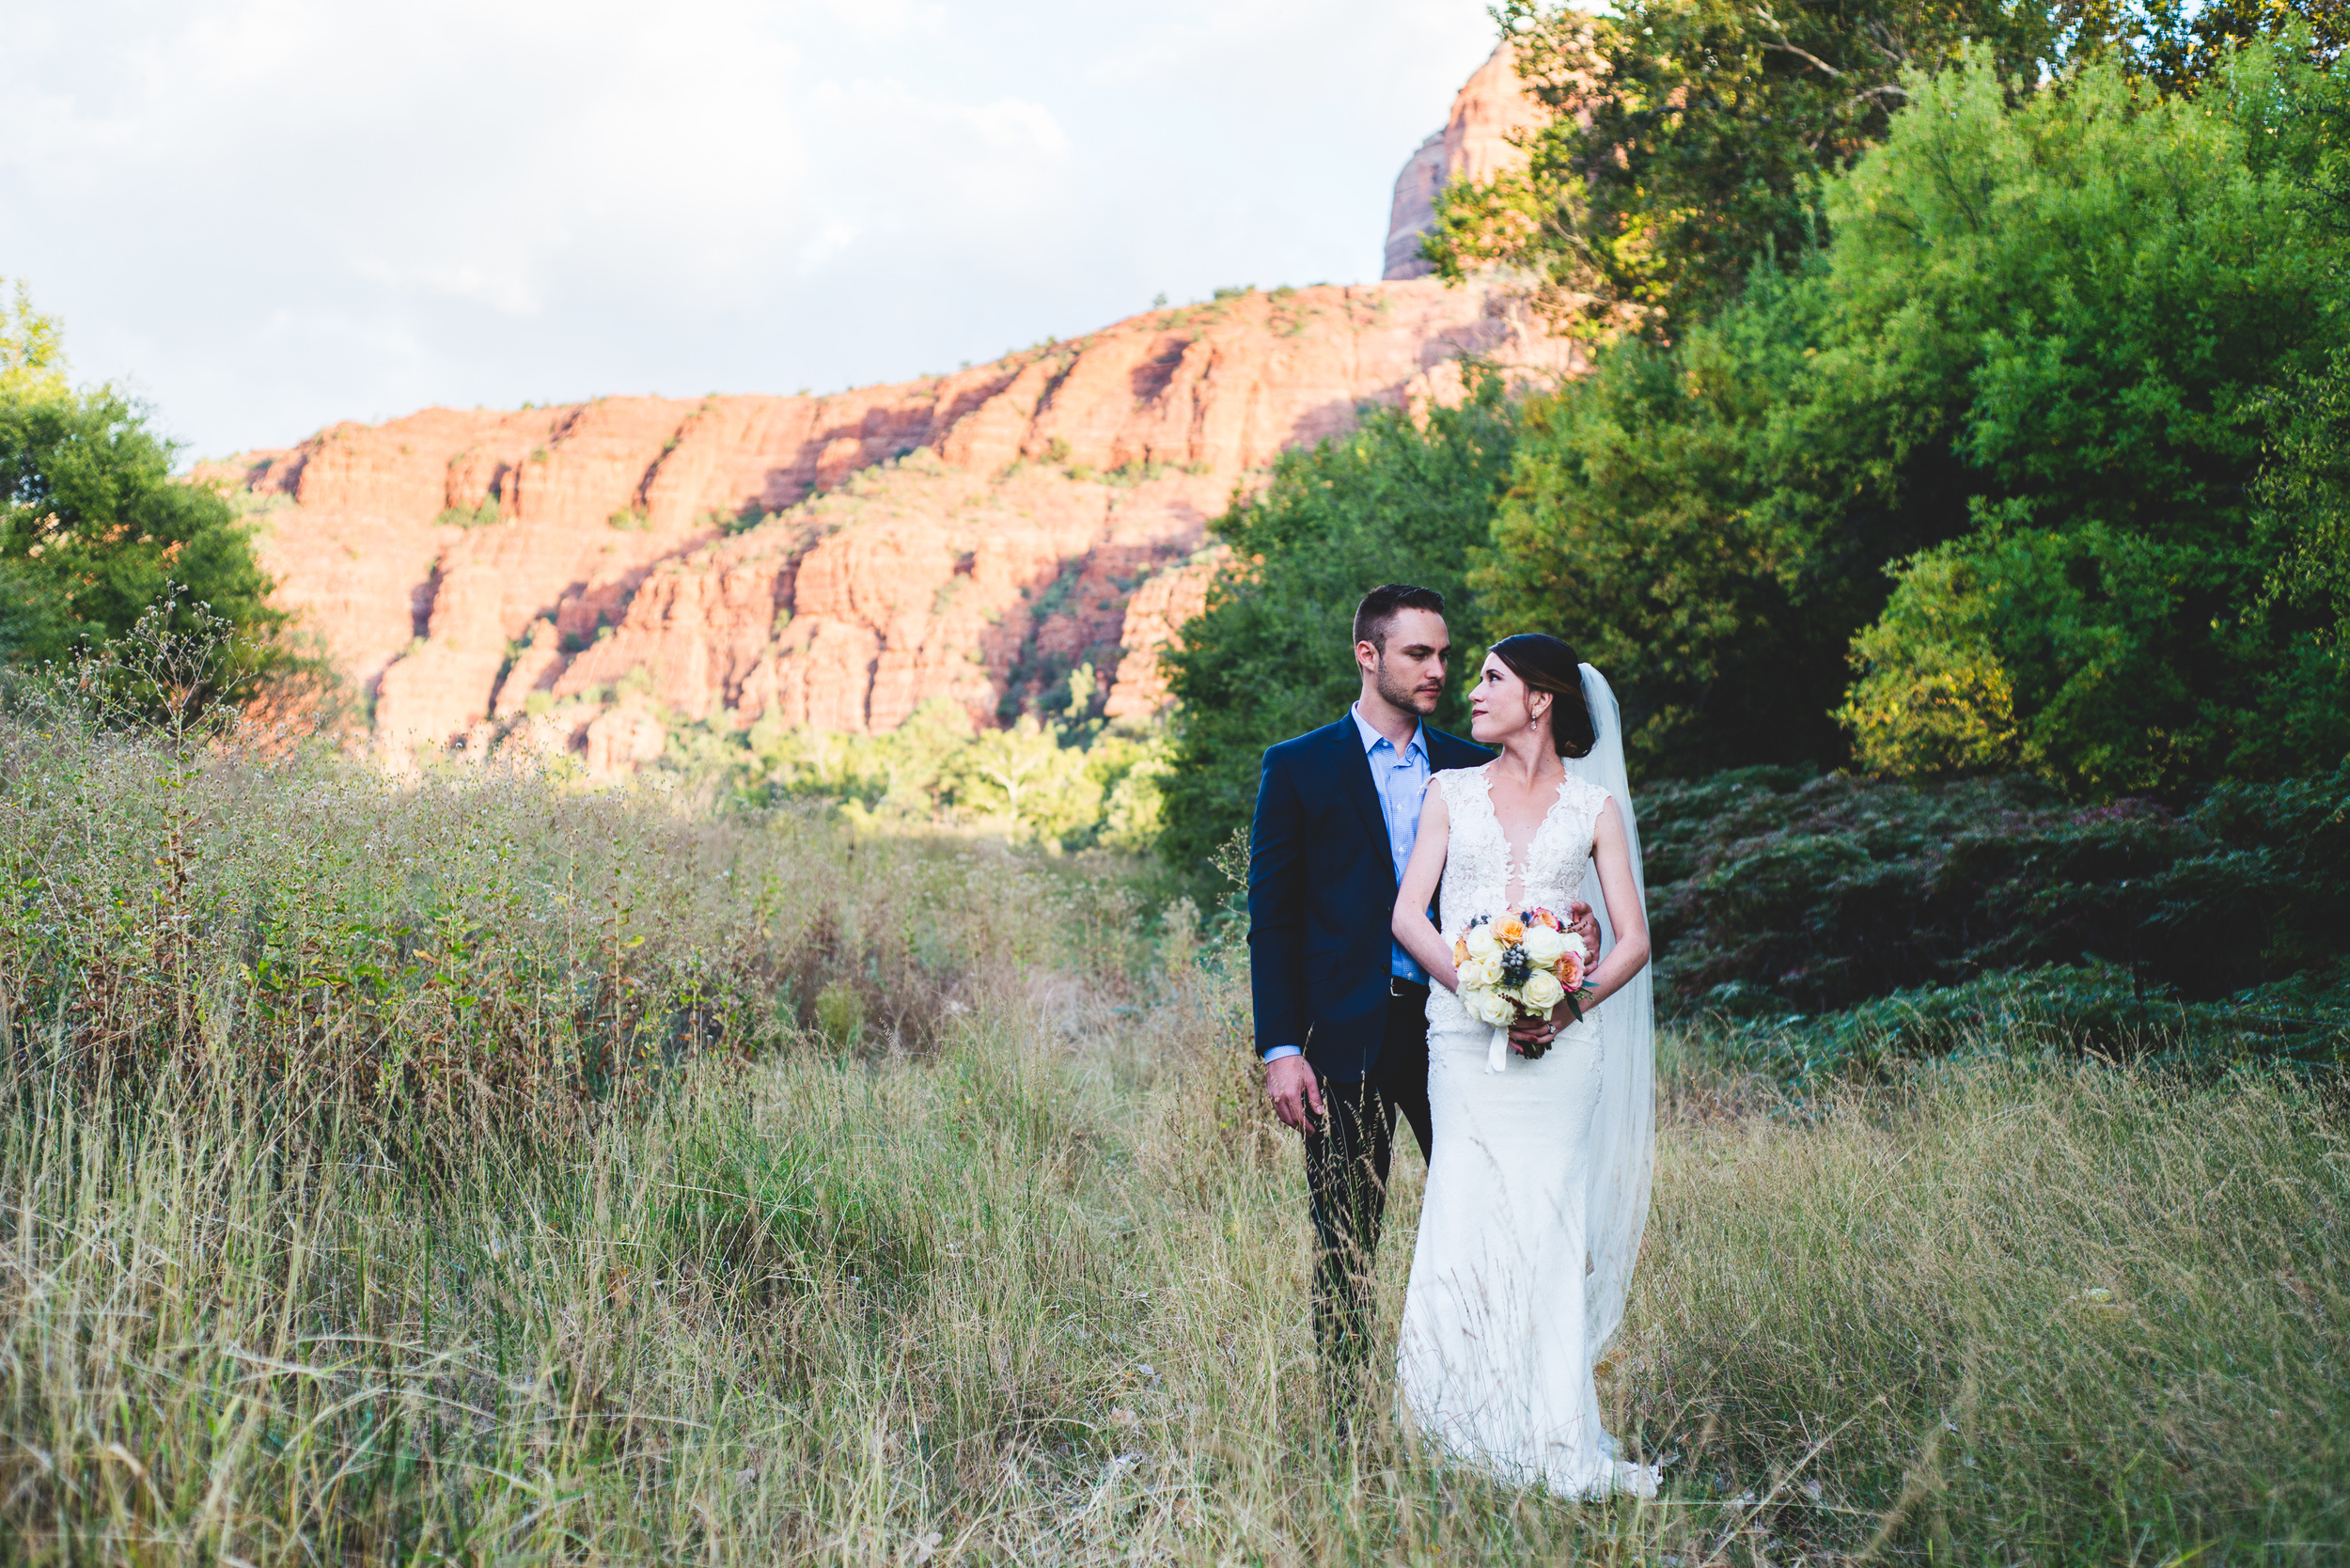 Wedding_Sedona (47 of 54).jpg